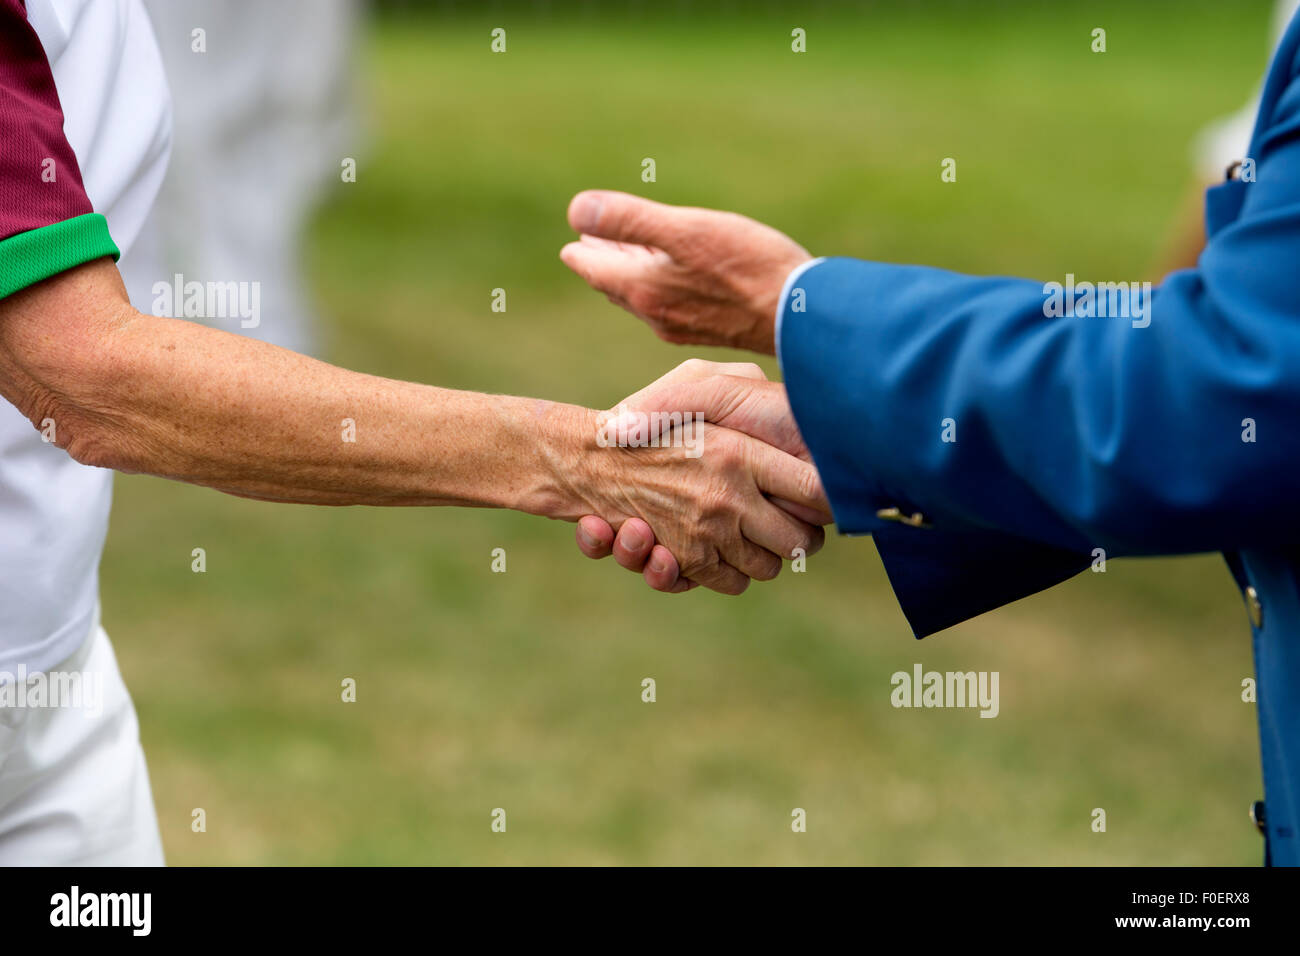 People shaking hands - Stock Image